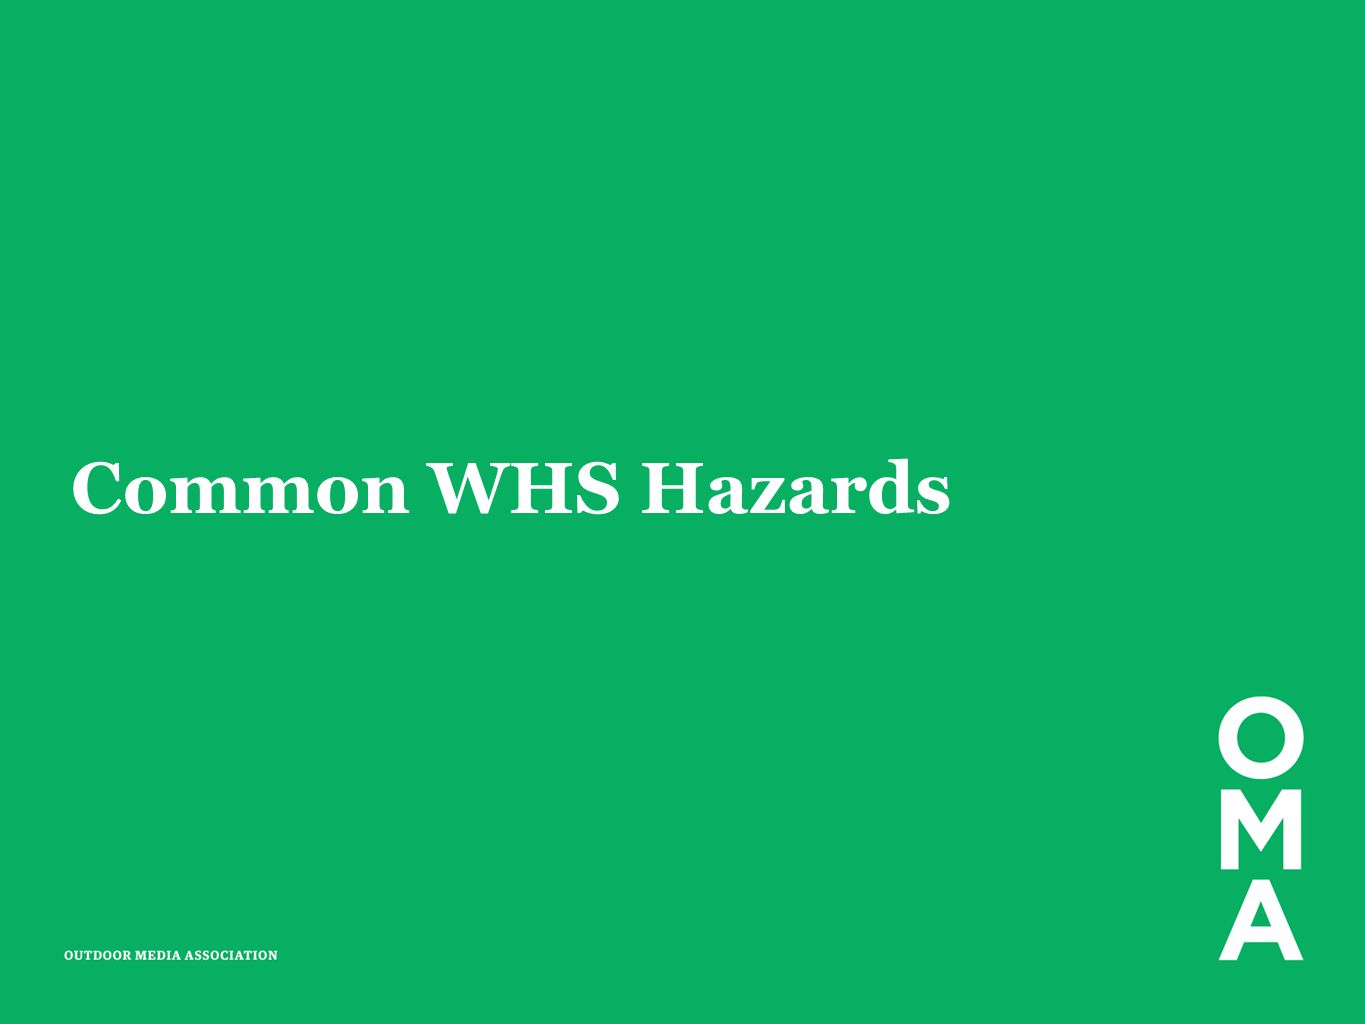 Common WHS Hazards